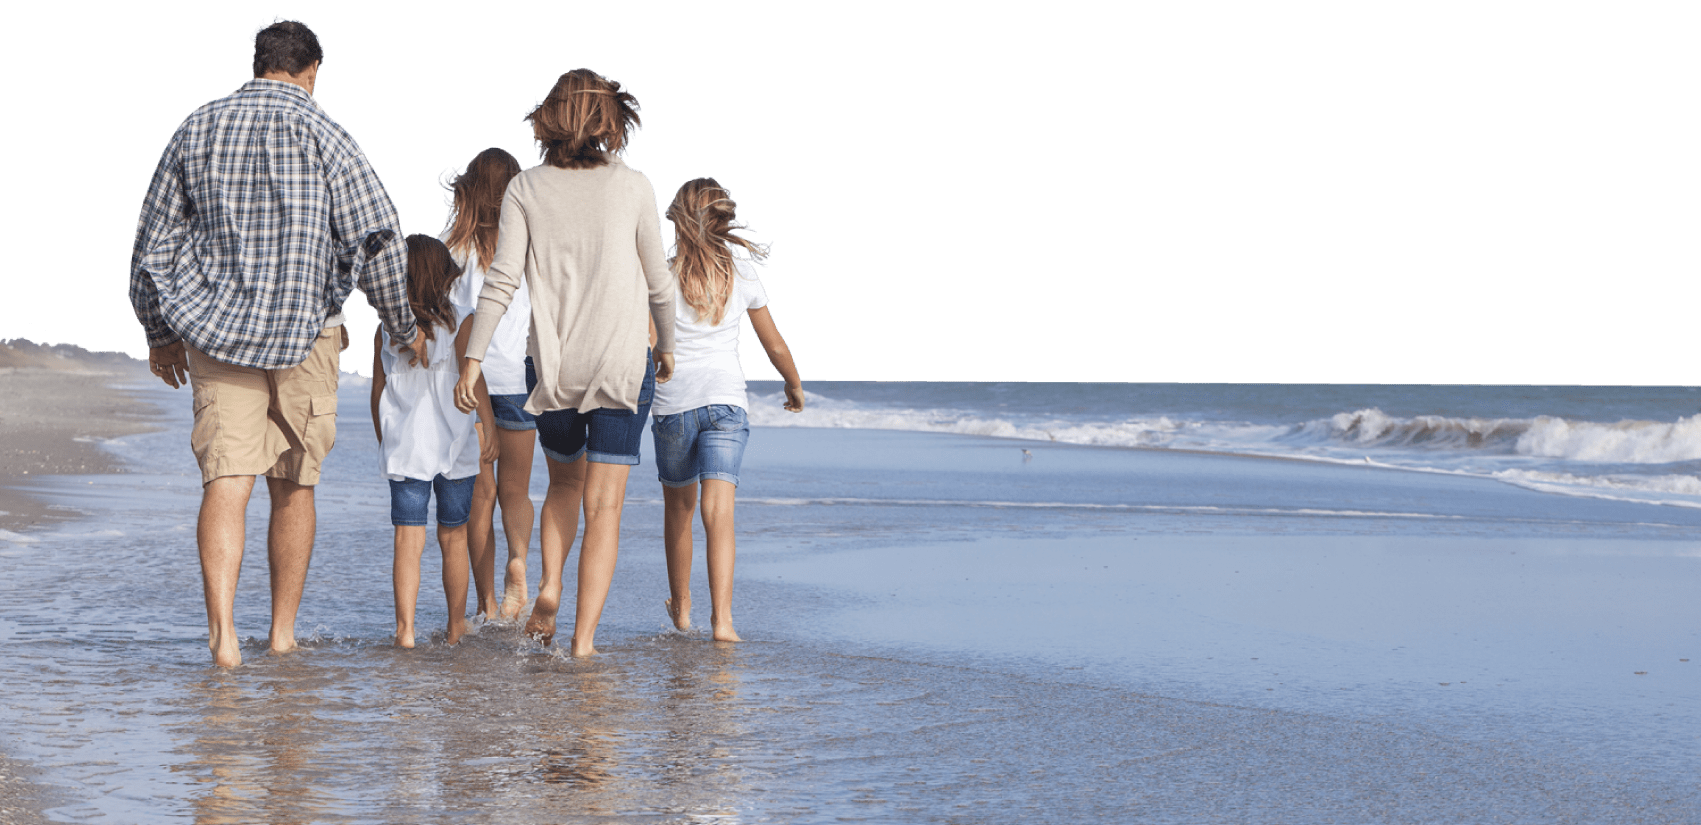 full width image of family walking on the beach